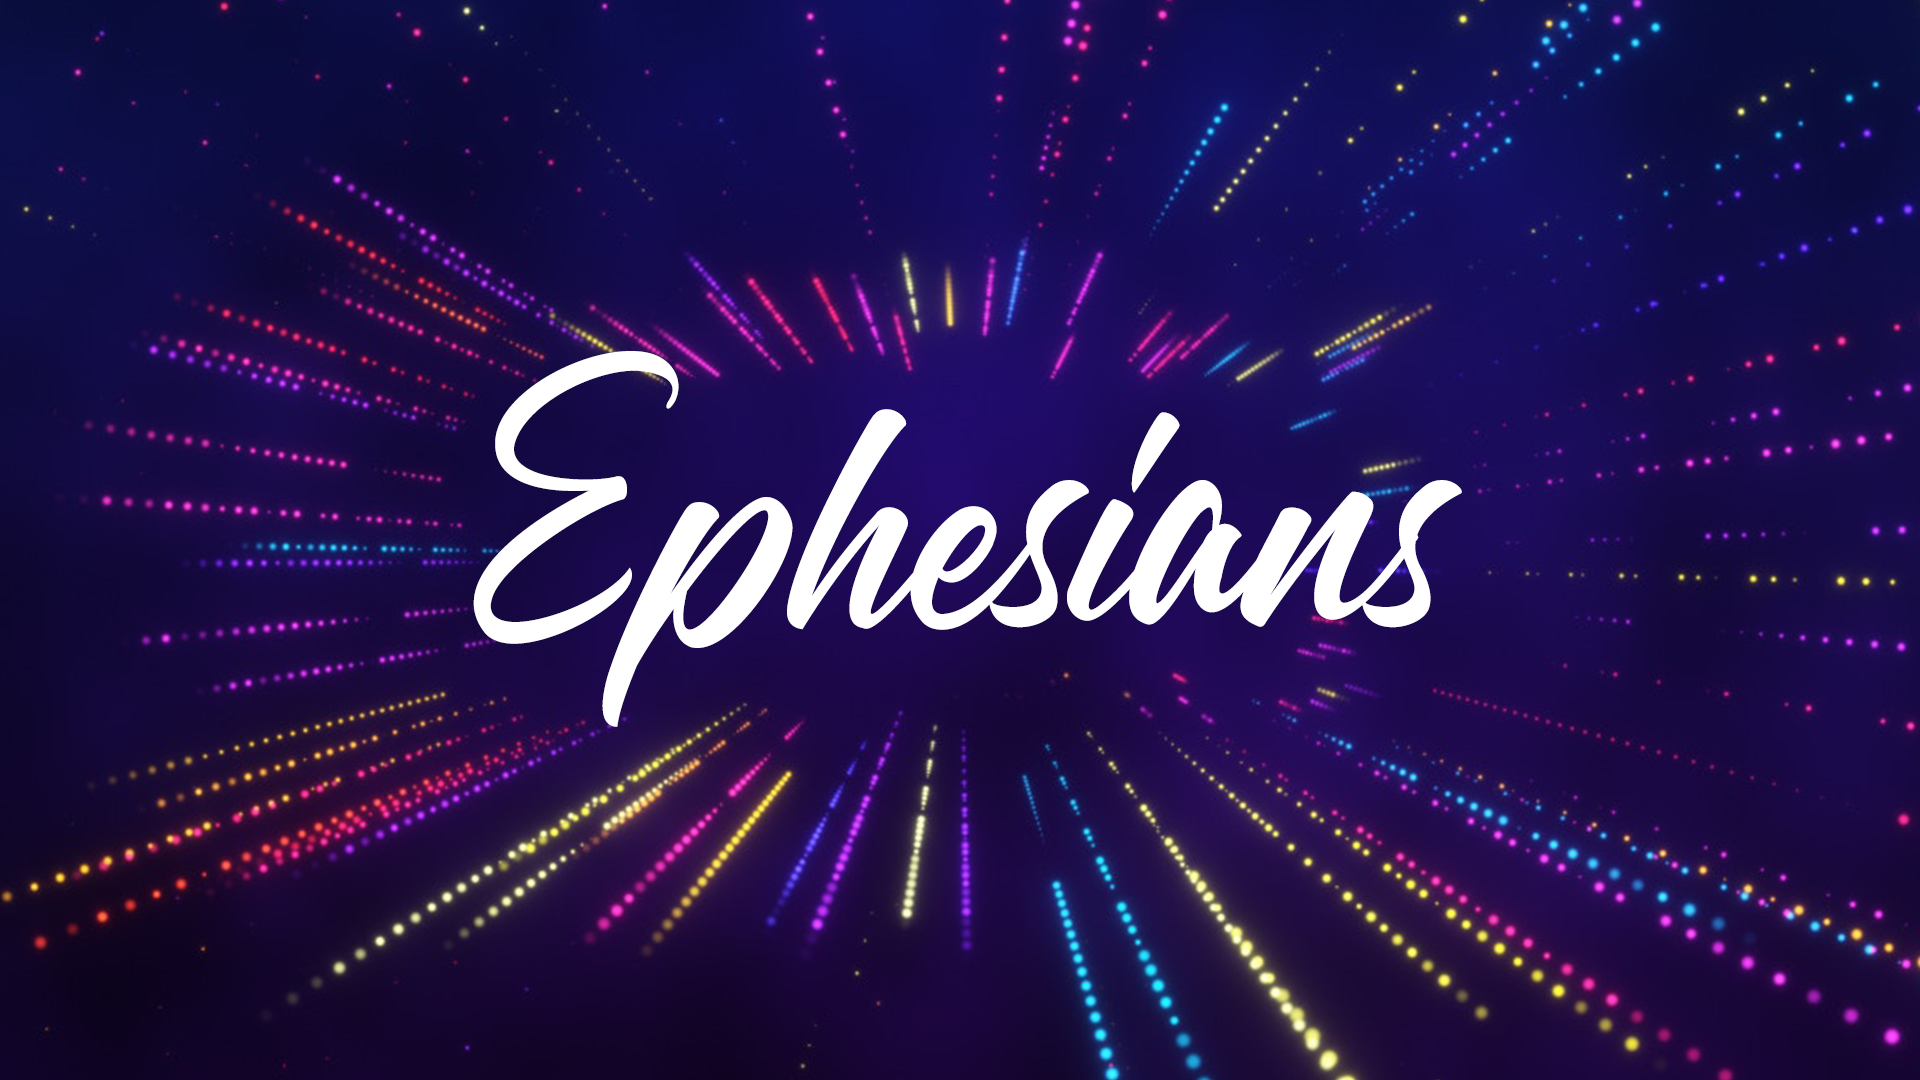 This summer, we are working our way through the book of Ephesians. Follow along below!